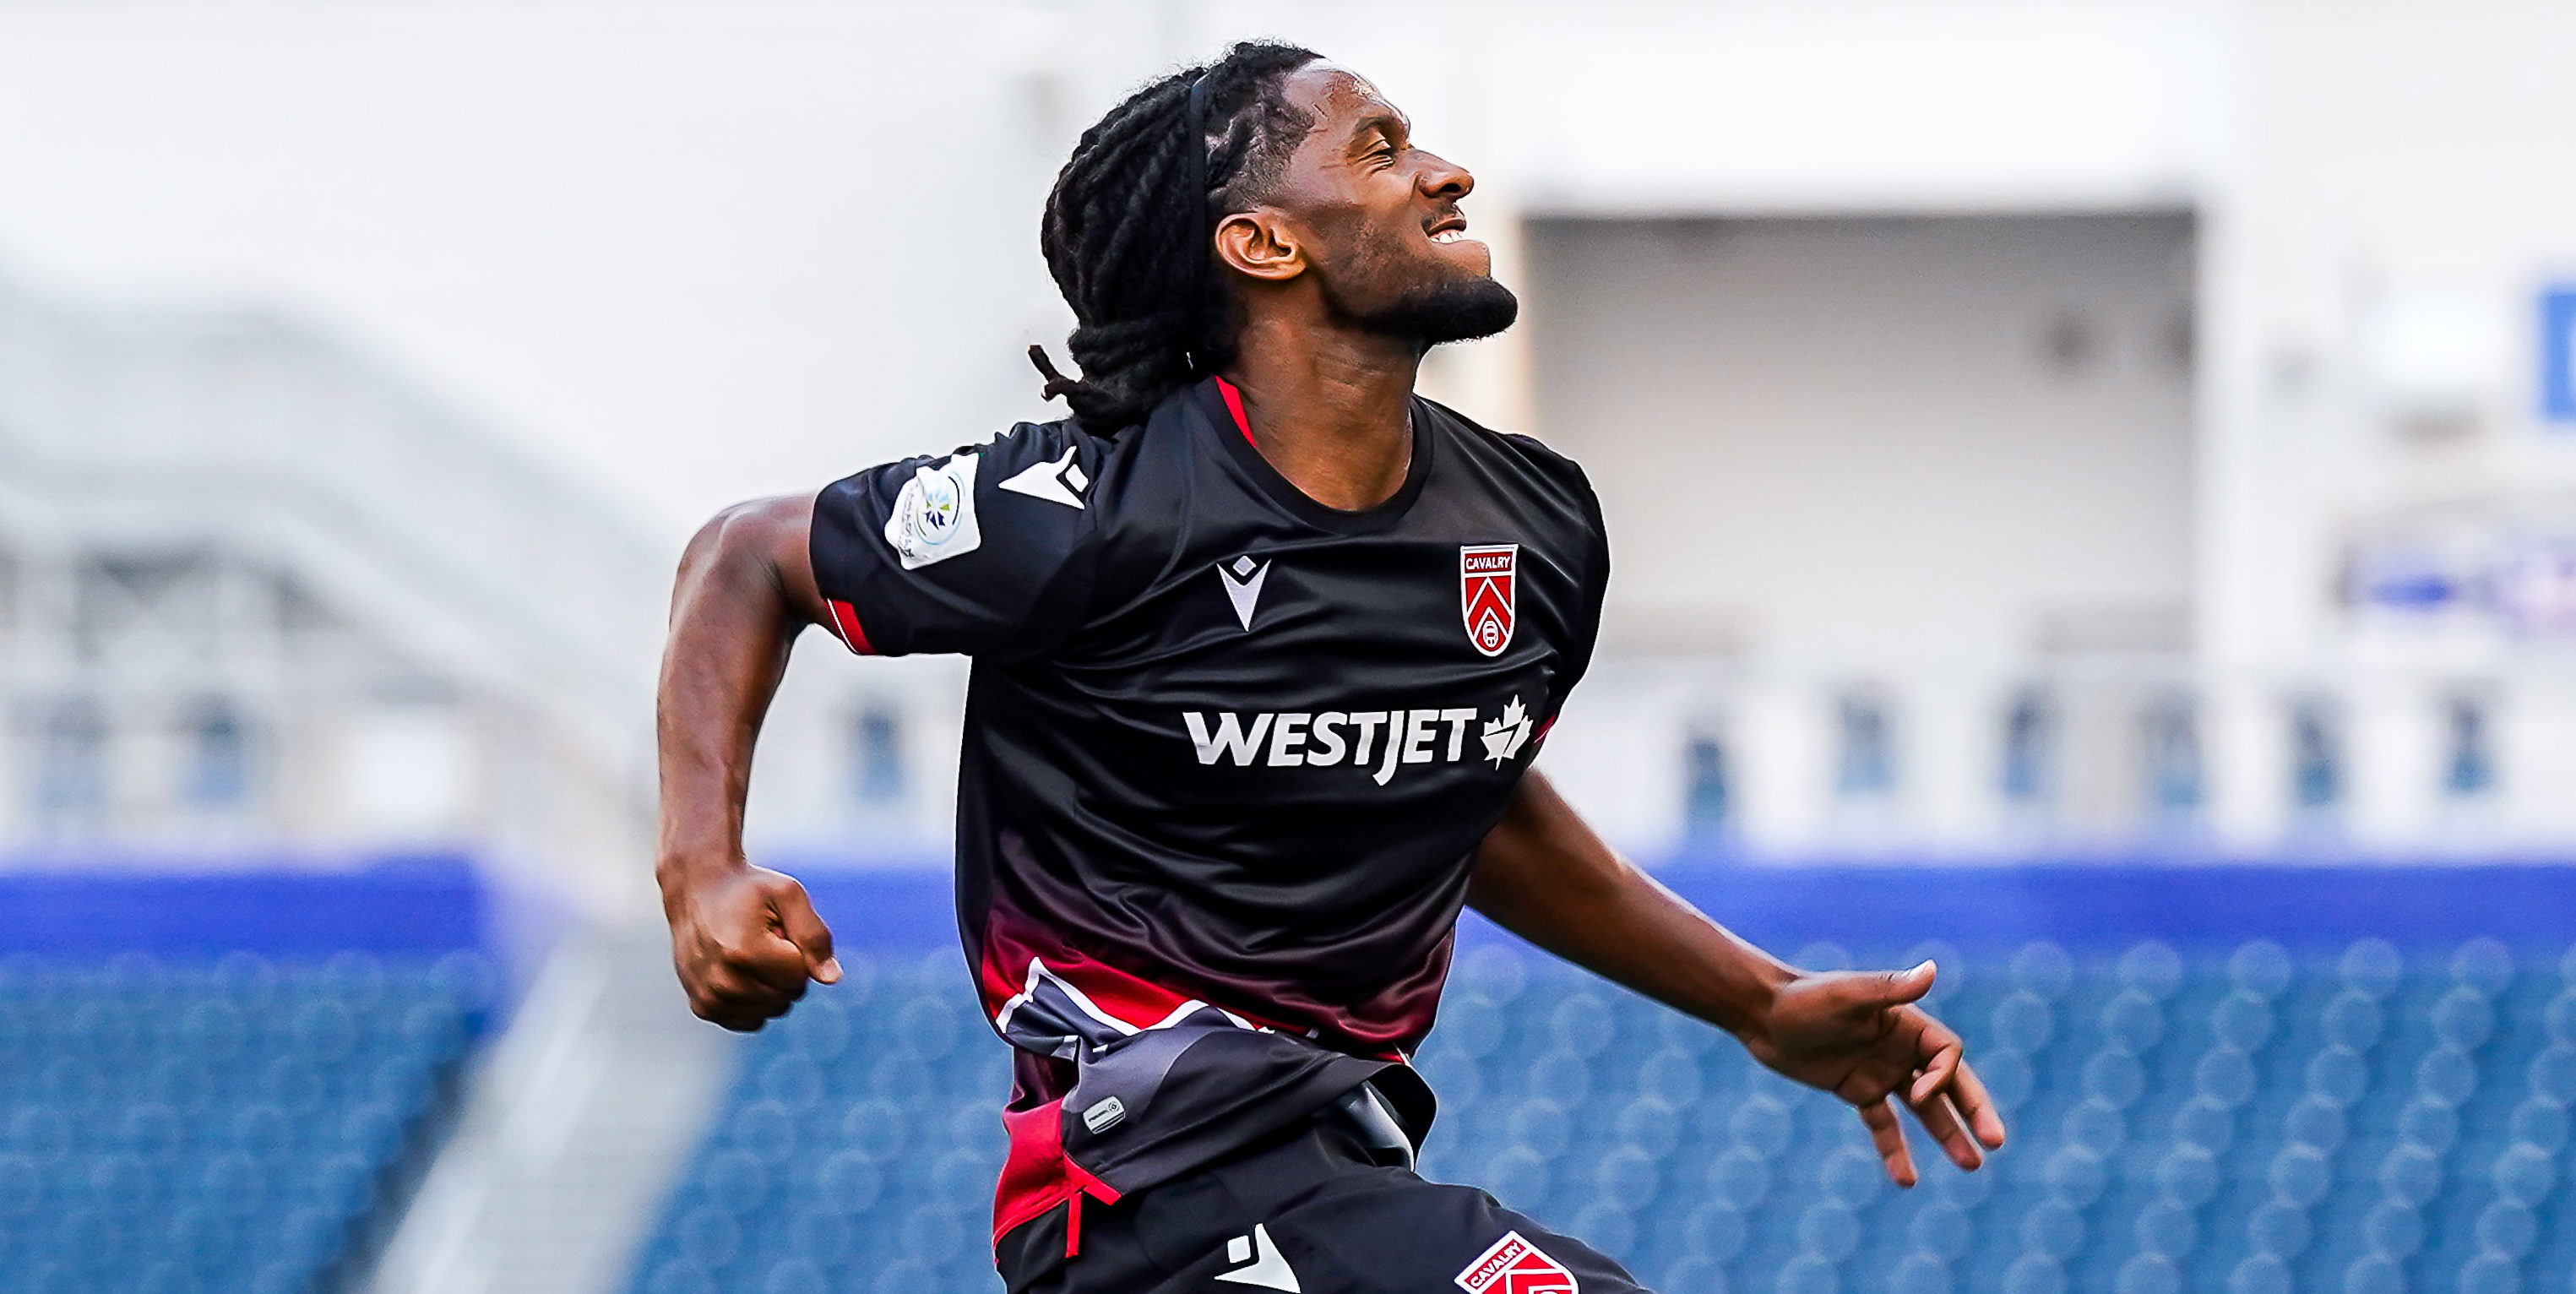 July 17, 2021. HFX Wanderers FC vs Cavalry FC. Second-Half. Ali Musse of Cavalry FC jumps in joy as he celebrates his goal against HFX Wanderers FC as teammate Anthony Novak looks on. (CPL)